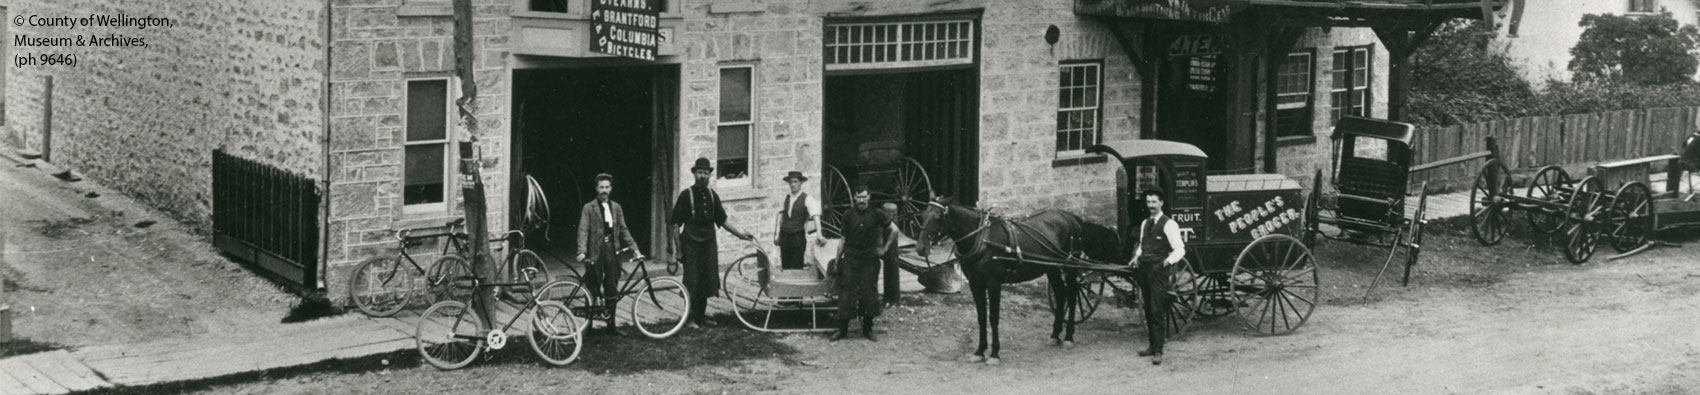 Men, horses and wagons standing in front of building